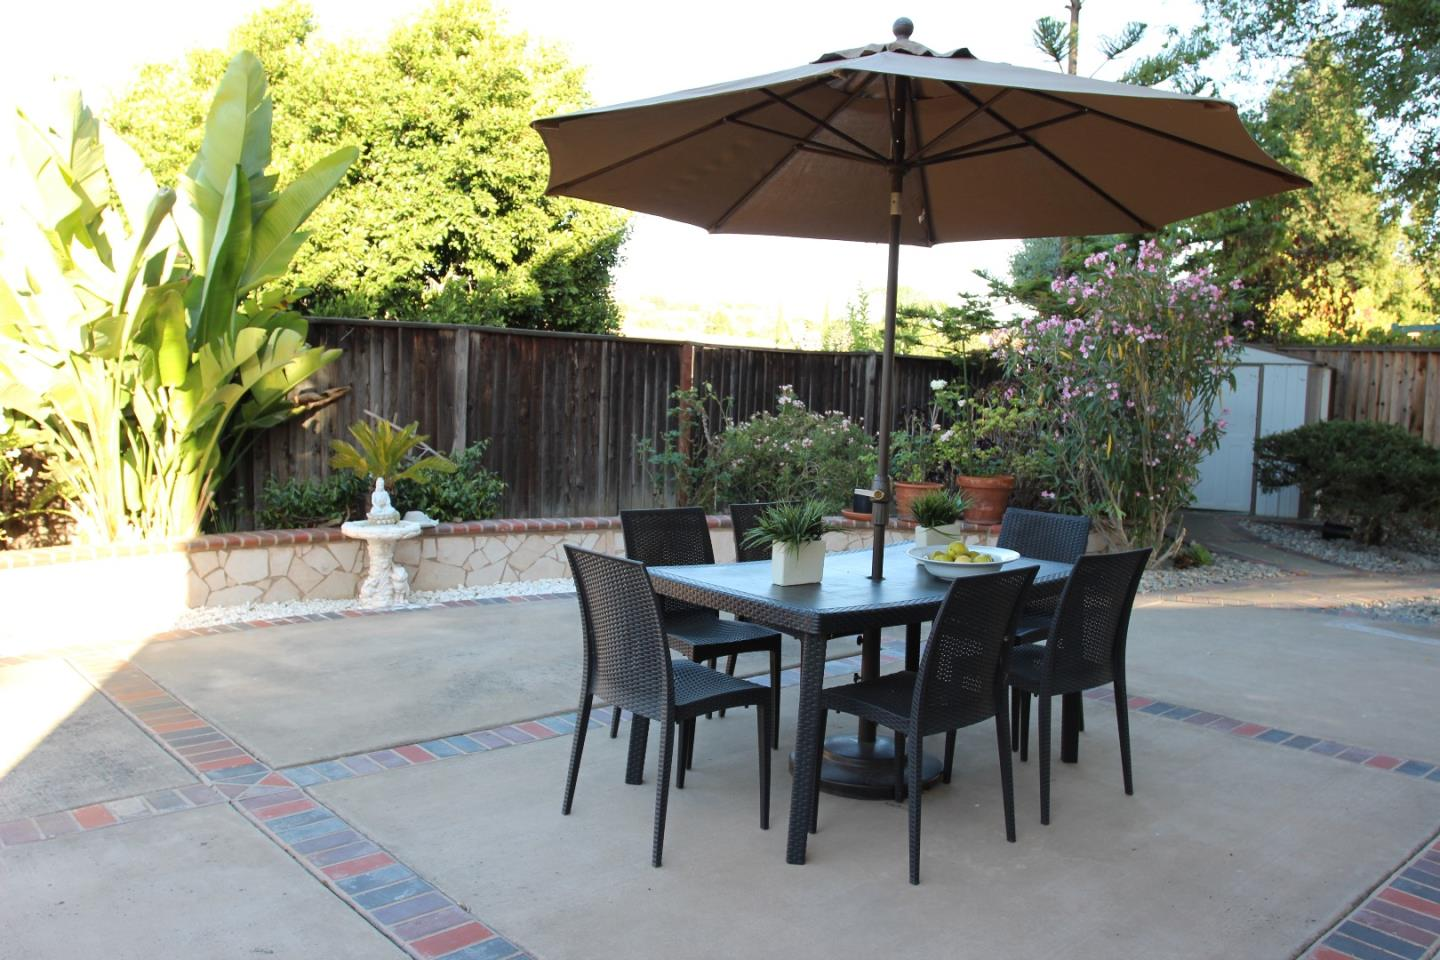 Additional photo for property listing at 4567 Terra Place  San Jose, California 95121 United States